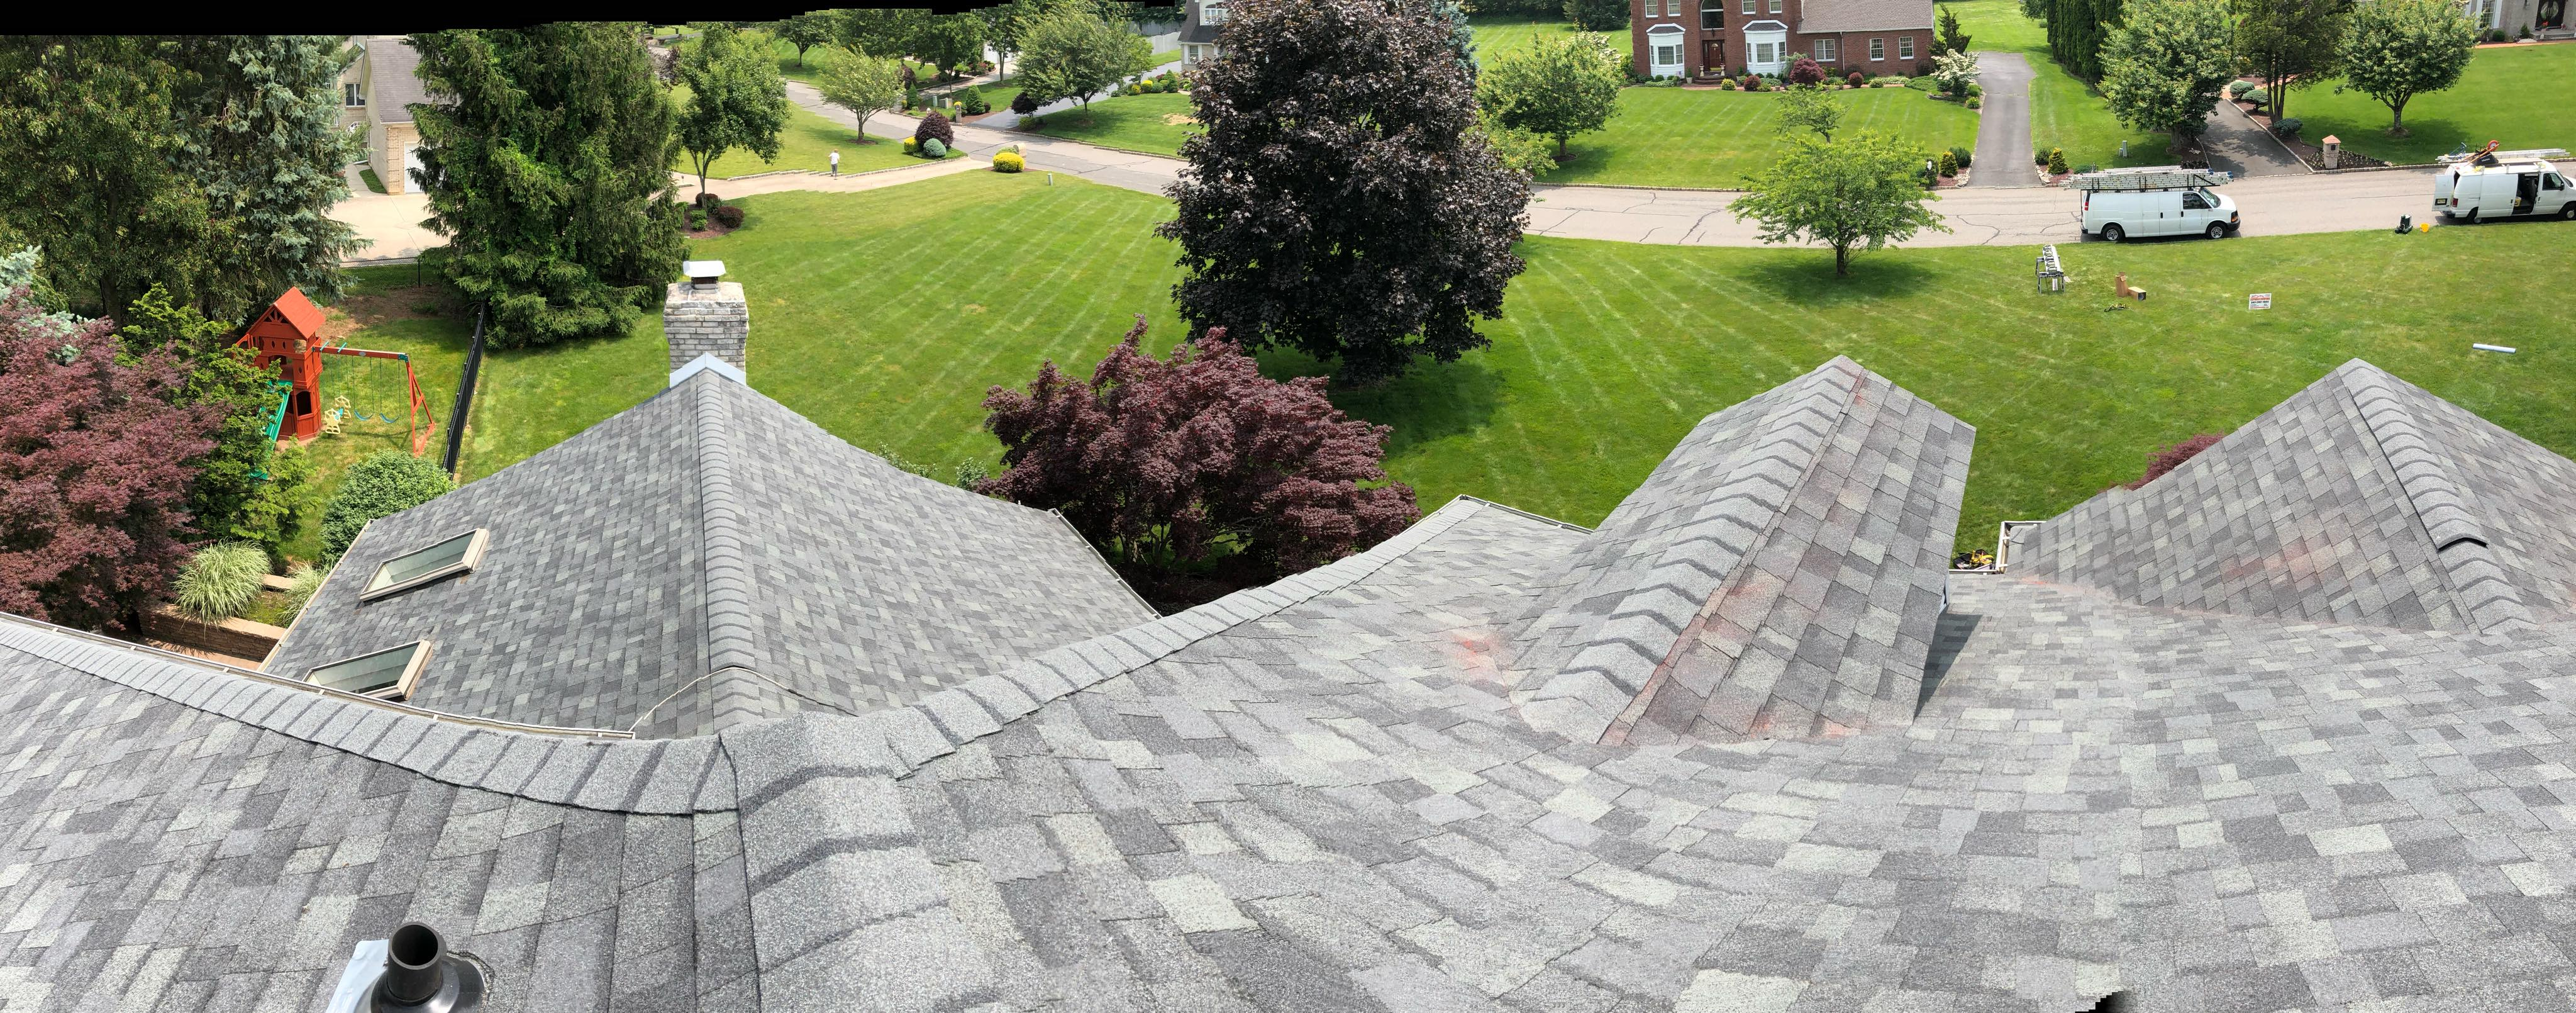 Roof Replacement Calculator - Don't Overpay, Compare Pros